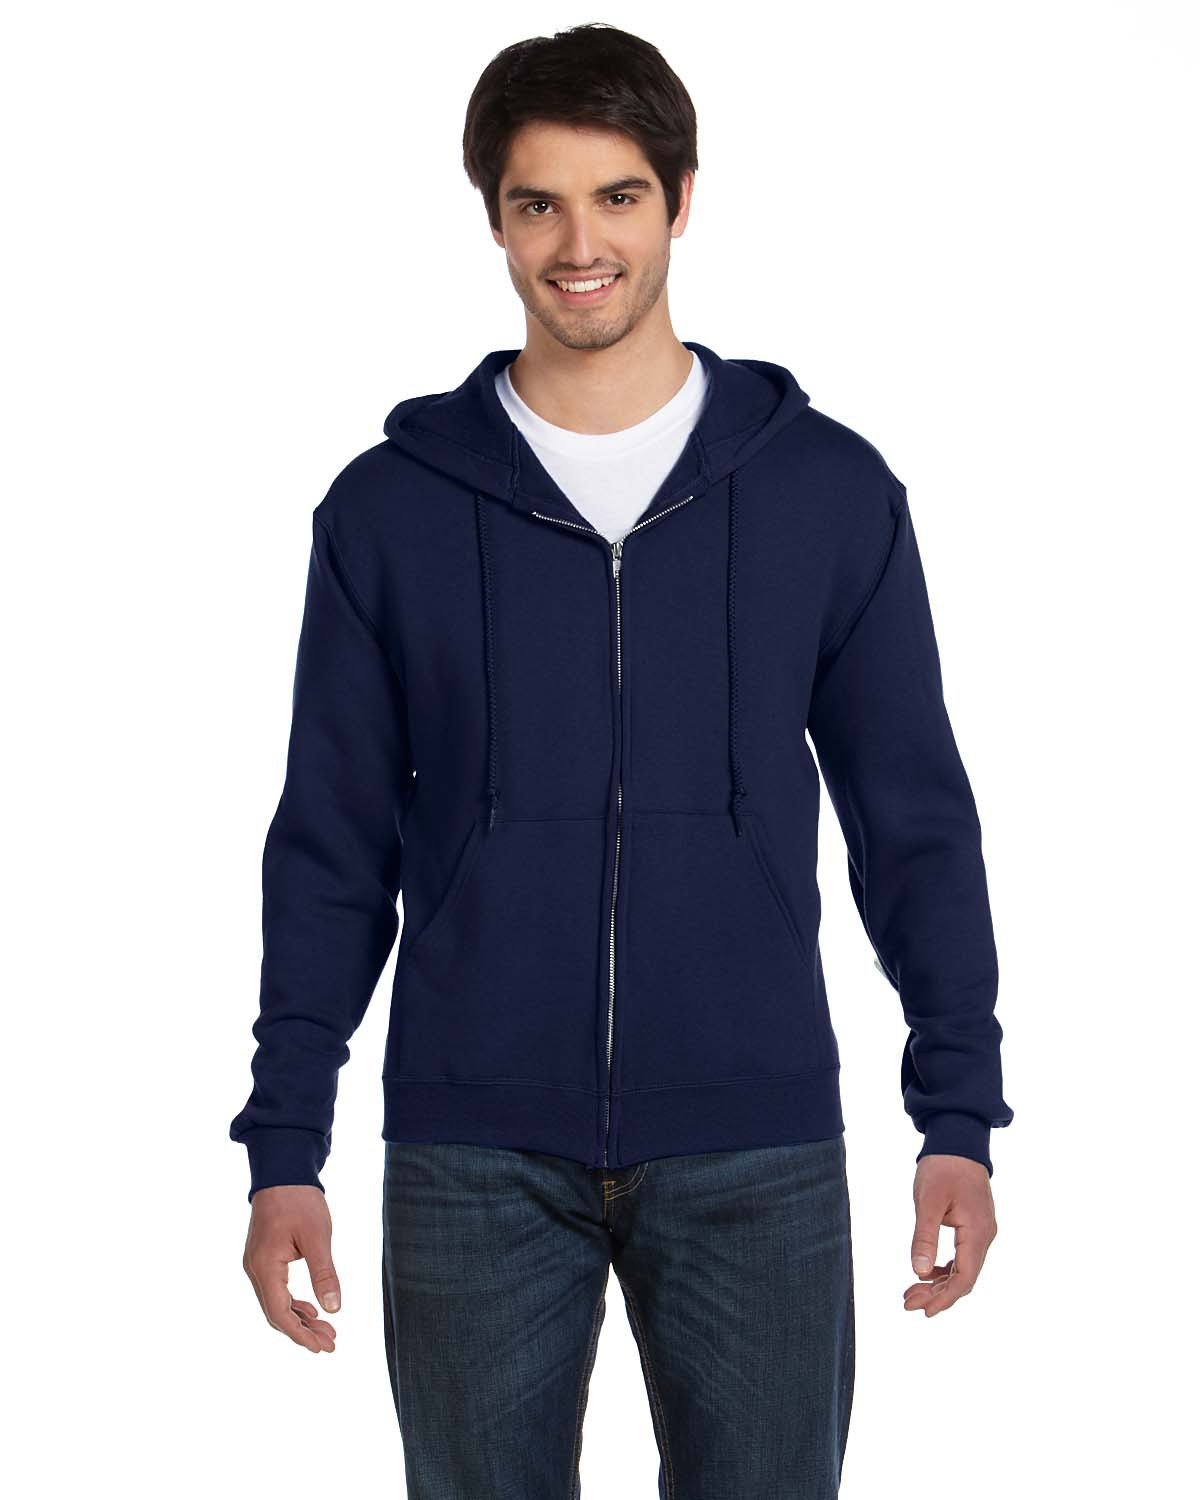 Fruit of the Loom 82230 Men 12 oz. Supercotton 70/30 Full Zip Hood J Navy at GotApparel